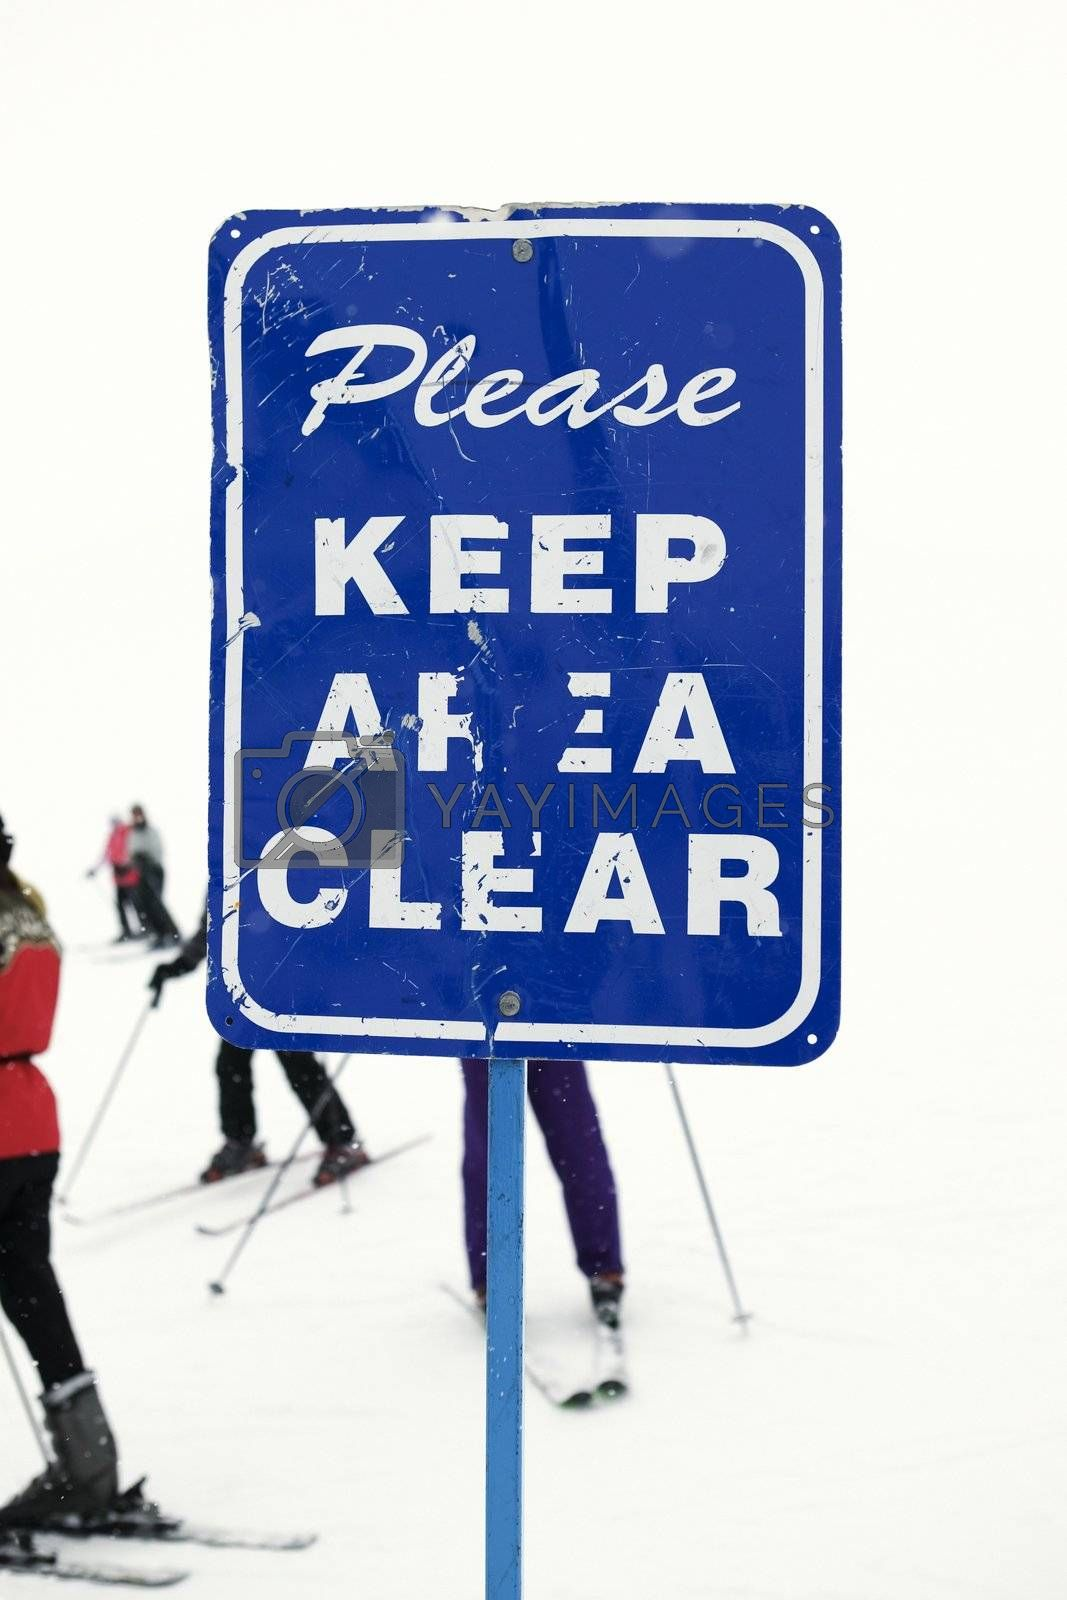 Sign at ski slope requesting area be kept clear.